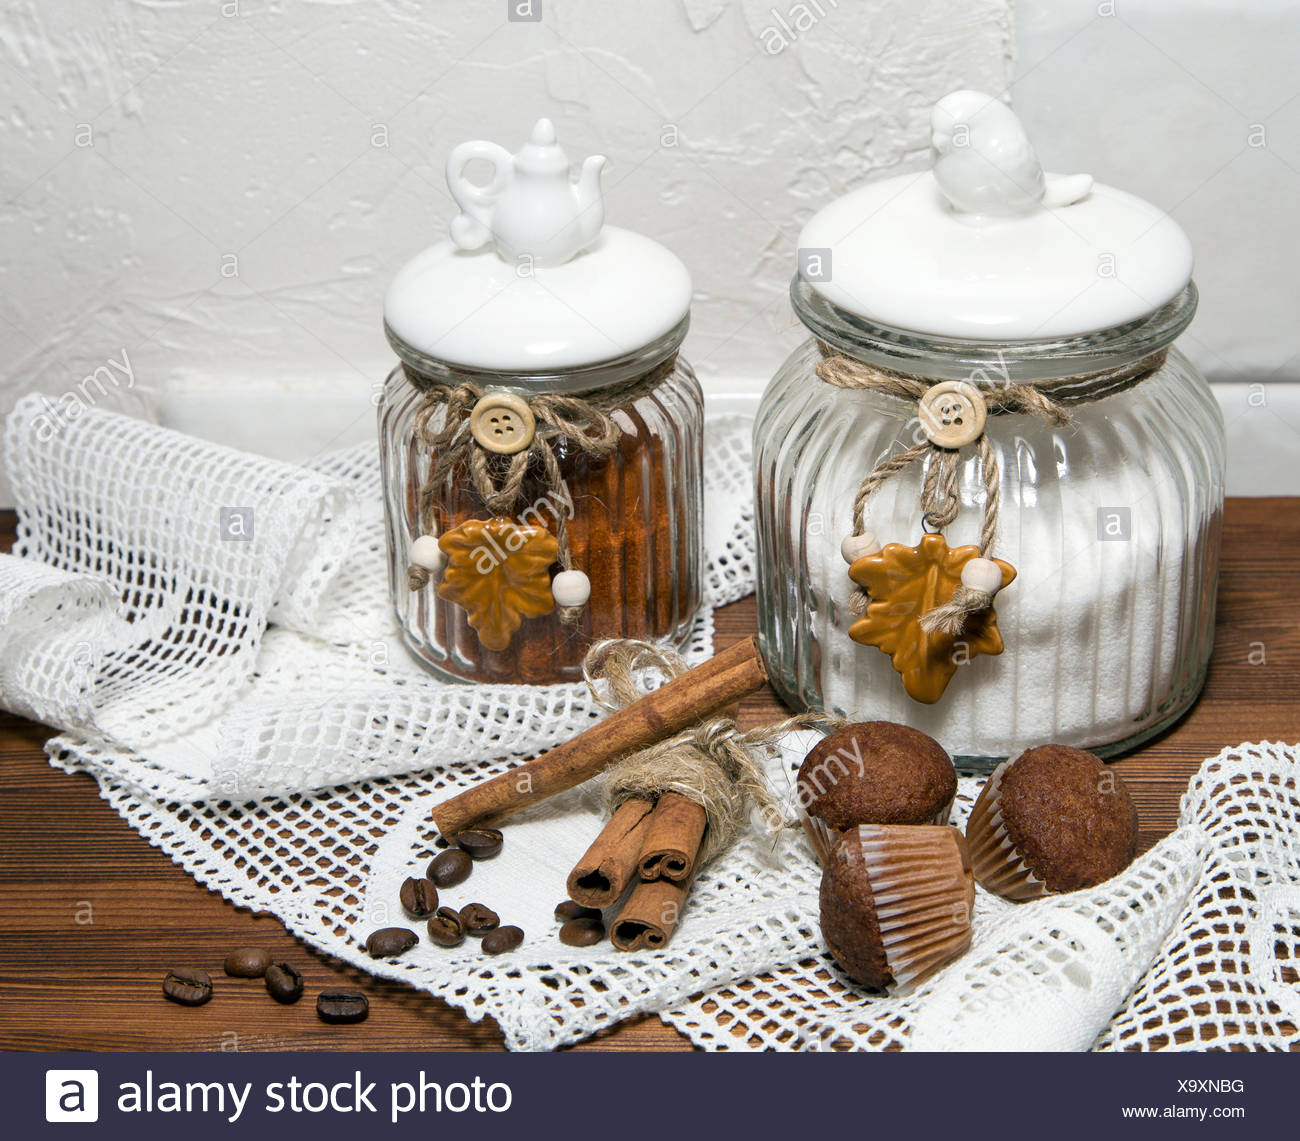 Banks for loose products - Stock Image